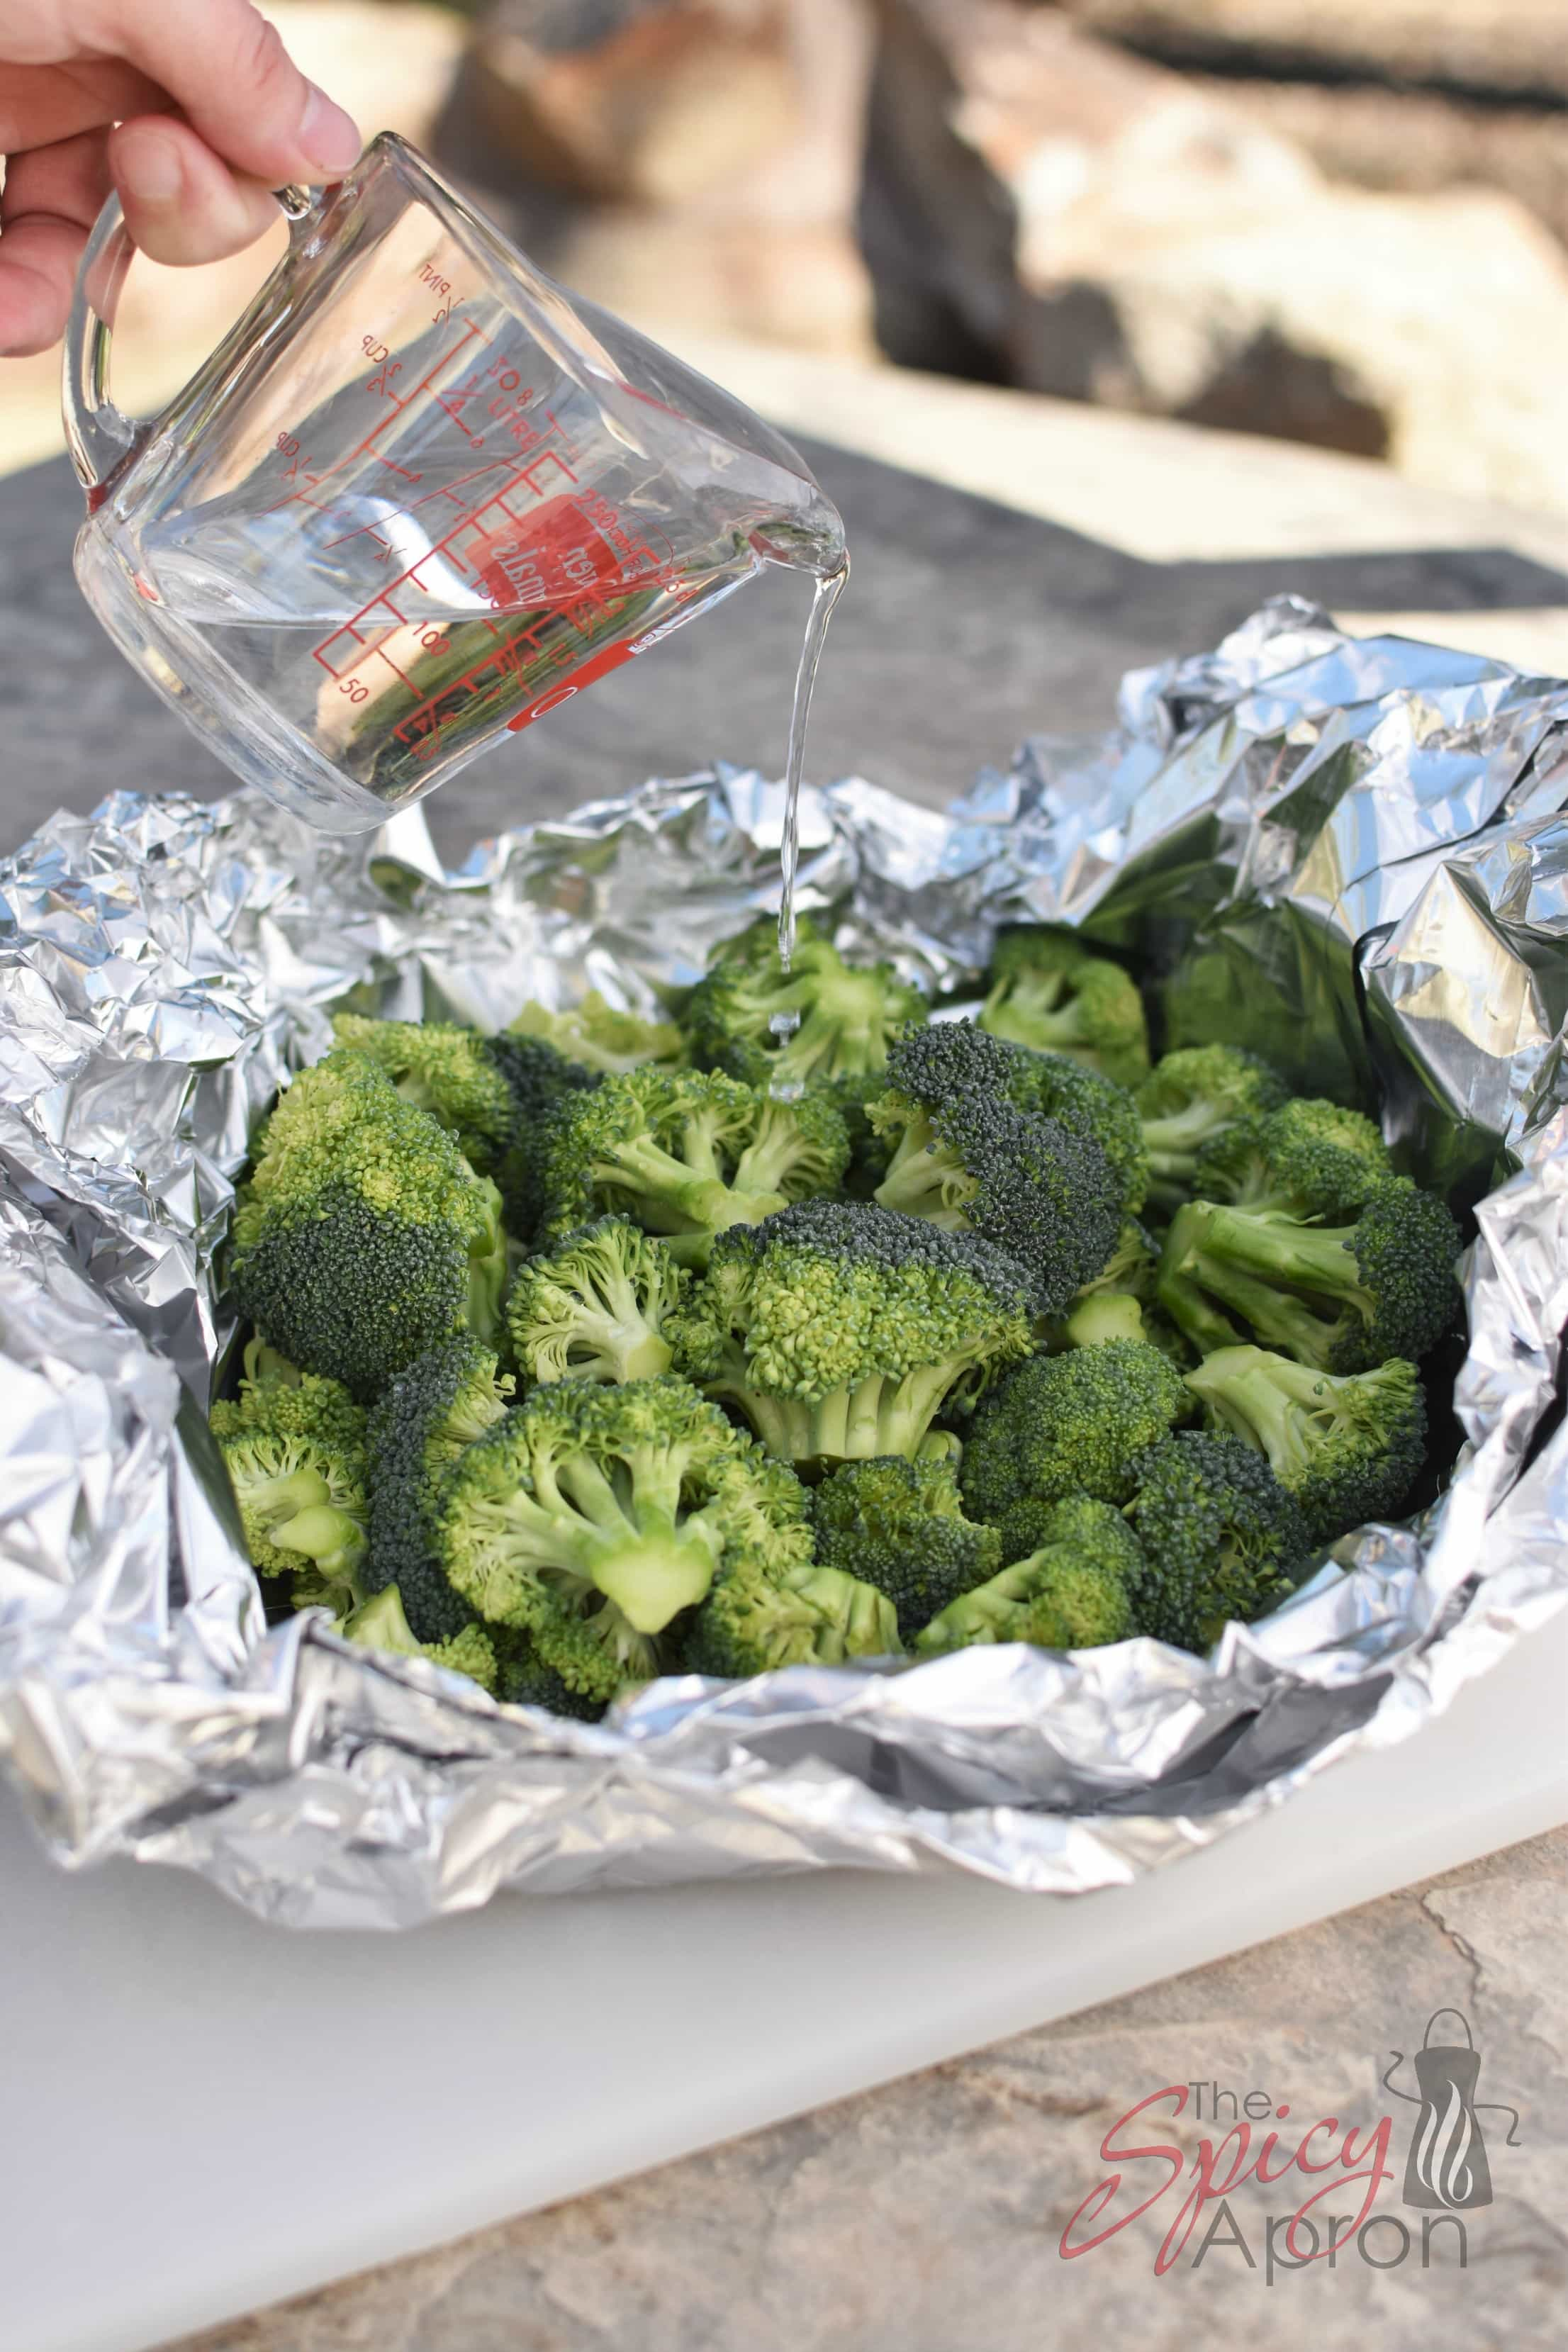 Steamed Broccoli Camping Vertical with watermark